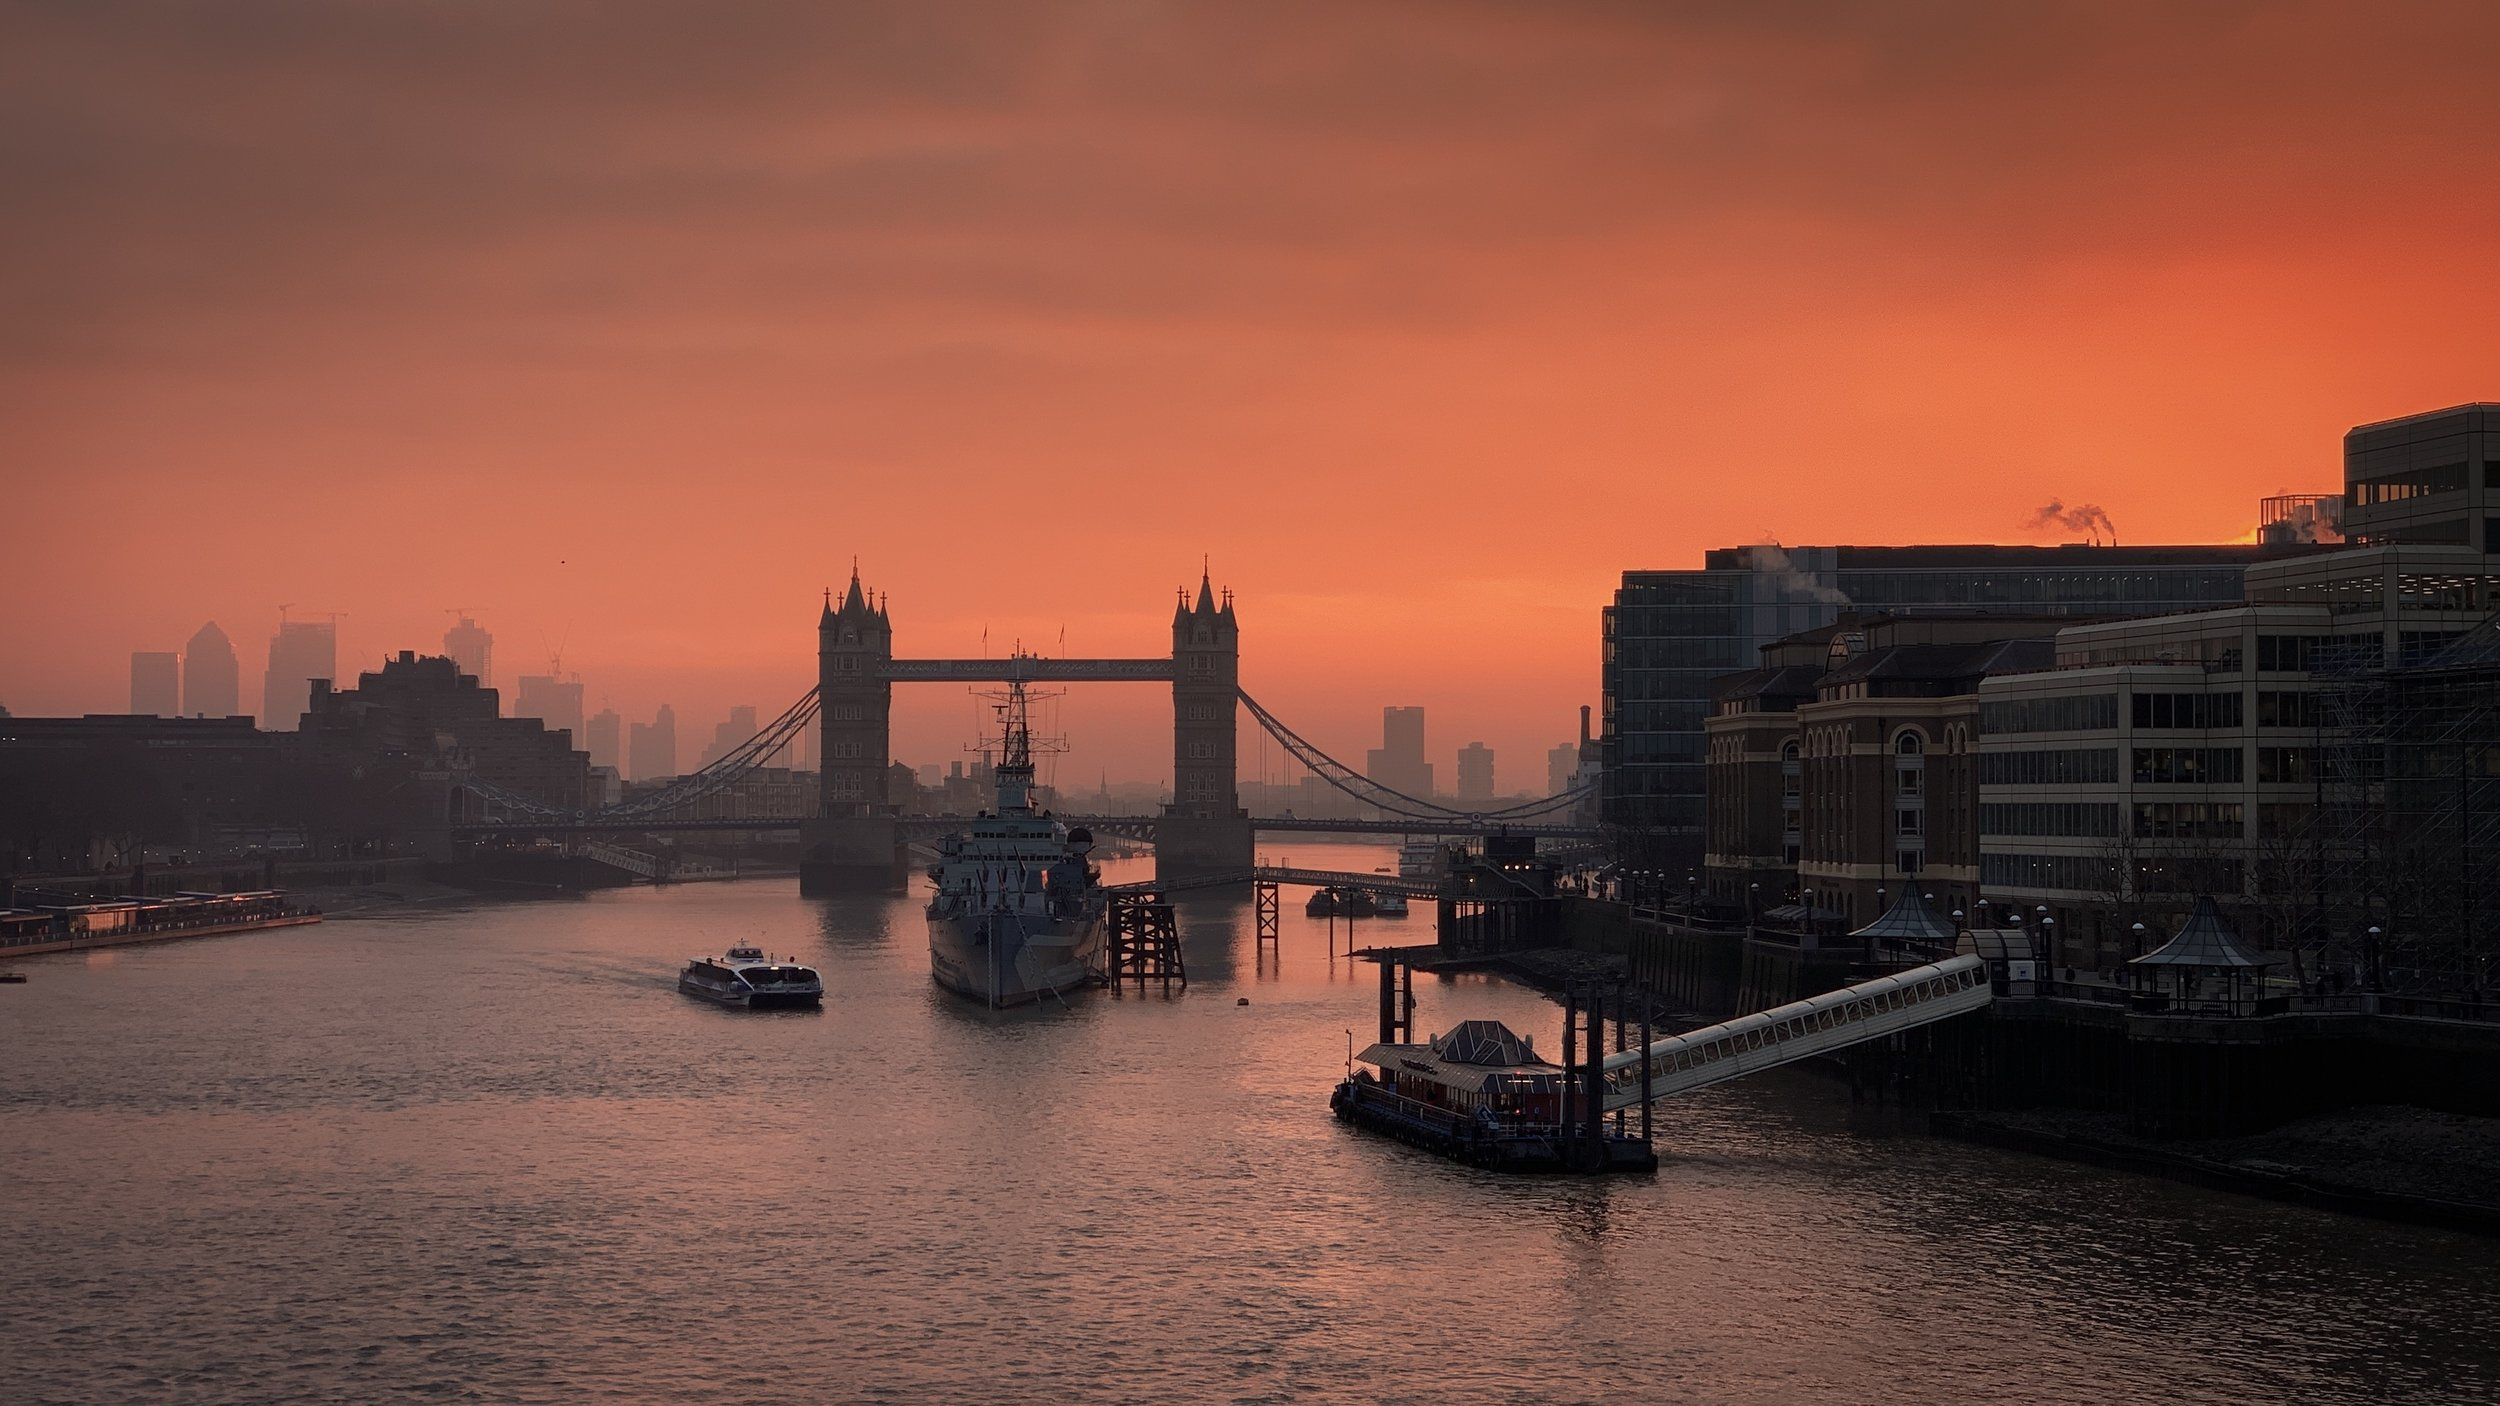 Tower Bridge and the River Thames under a blood red sky iPhone XS